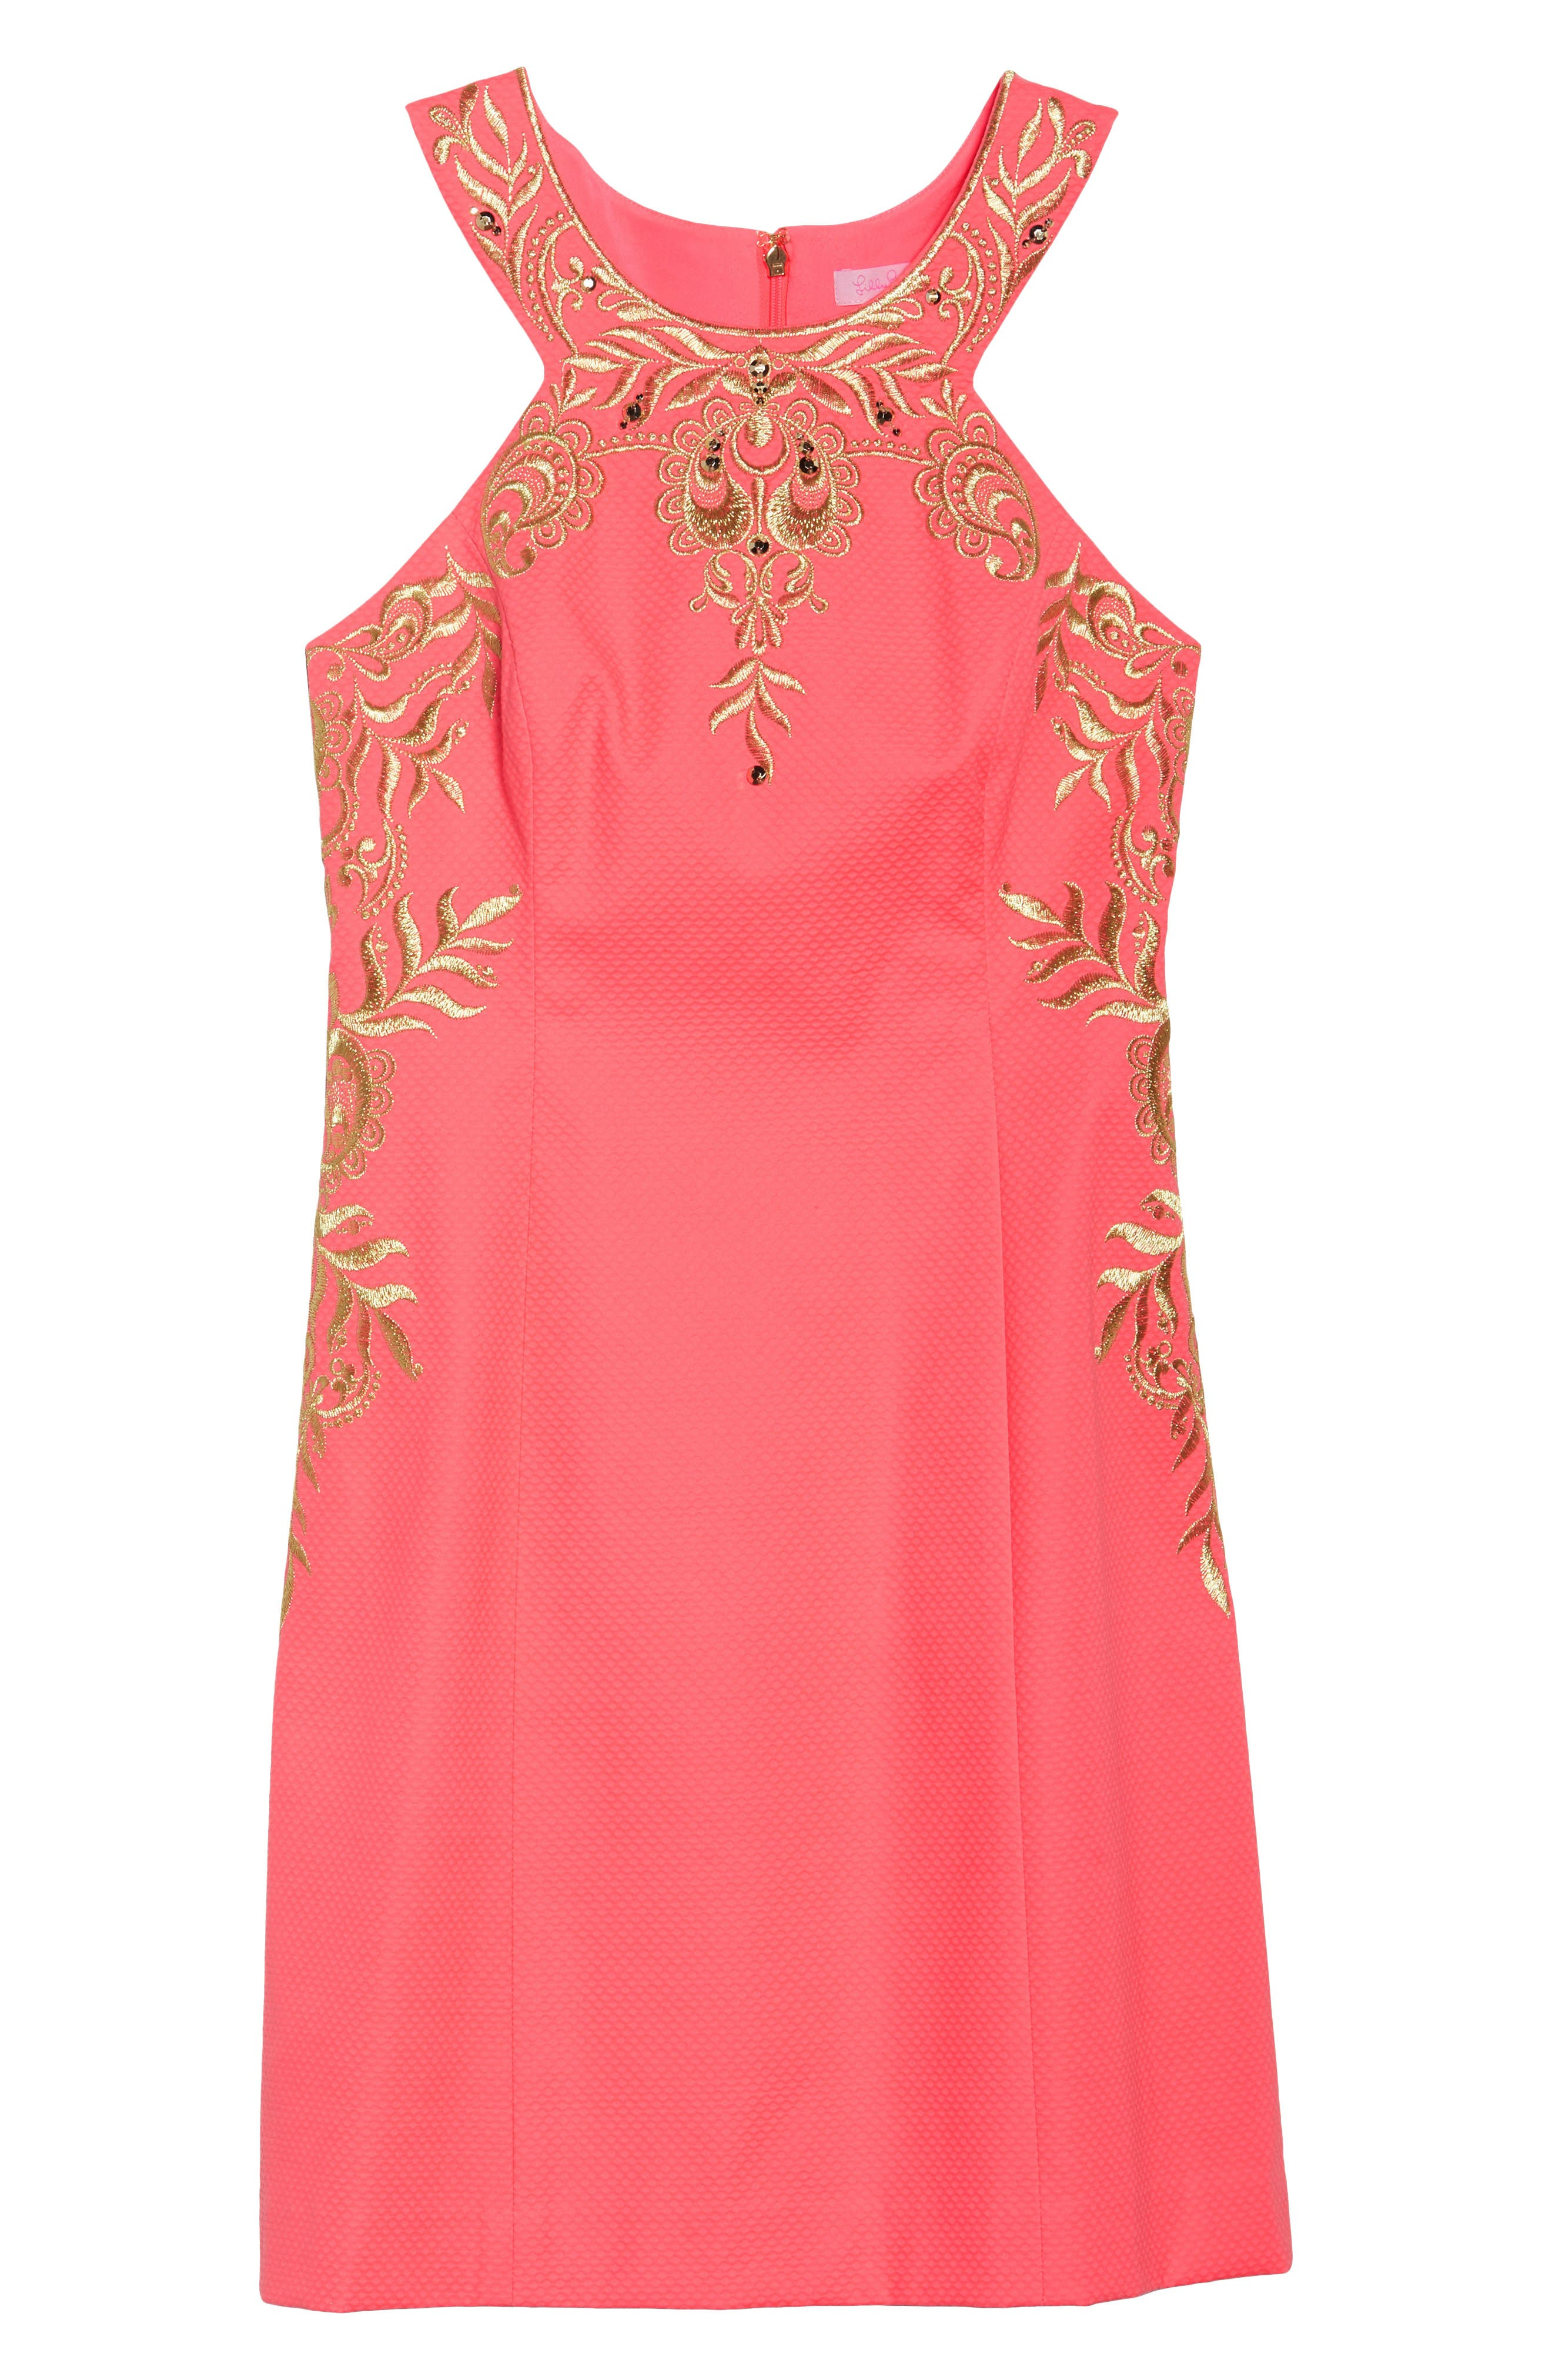 Tina Embroidered Sheath Dress,                             Alternate thumbnail 7, color,                             CORAL SUNS